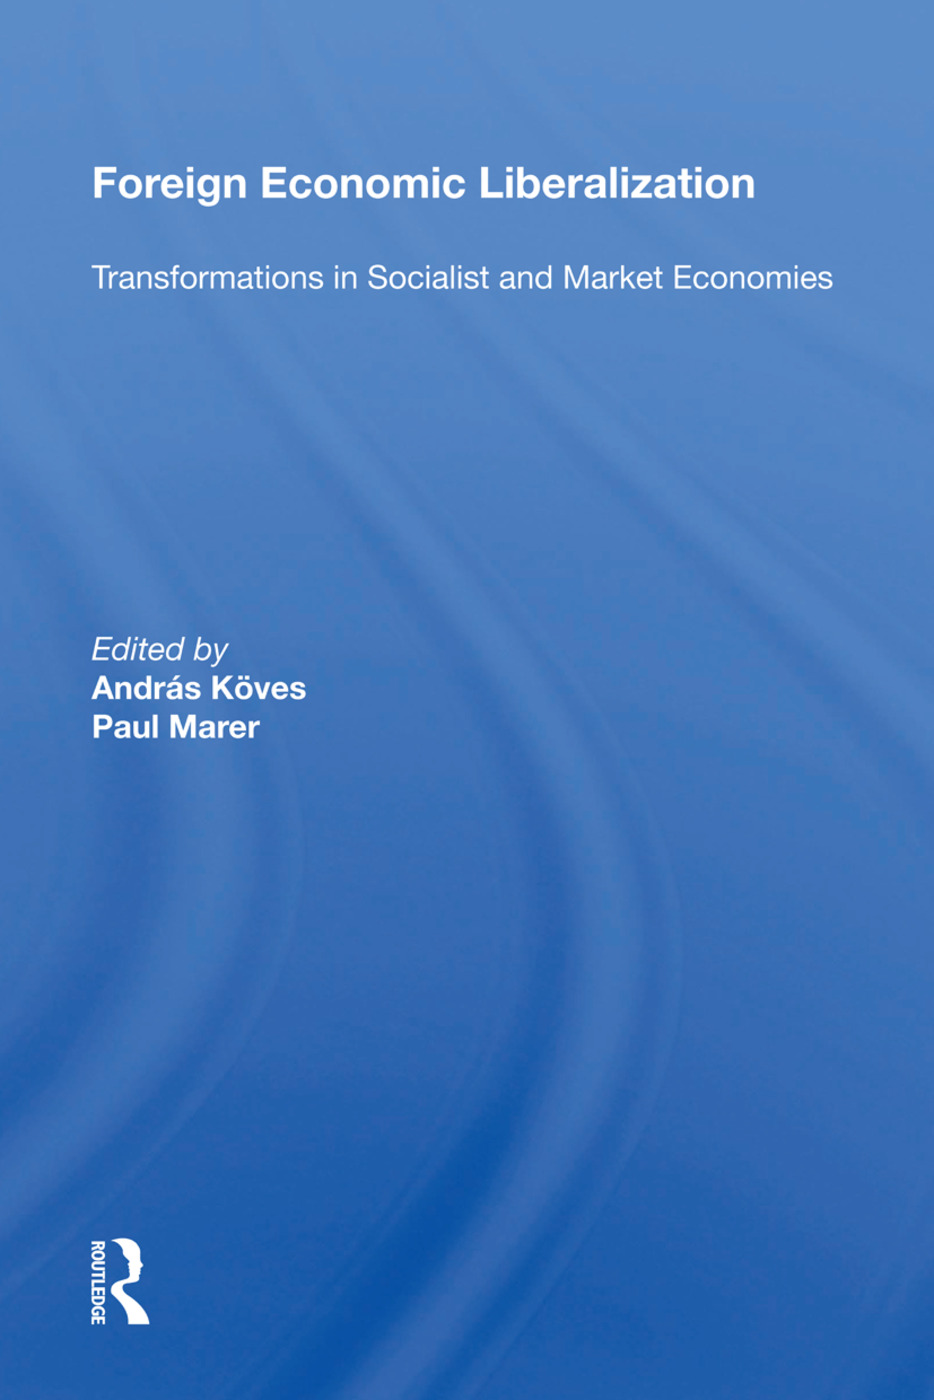 Foreign Economic Liberalization: Transformations In Socialist And Market Economies, 1st Edition (Paperback) book cover